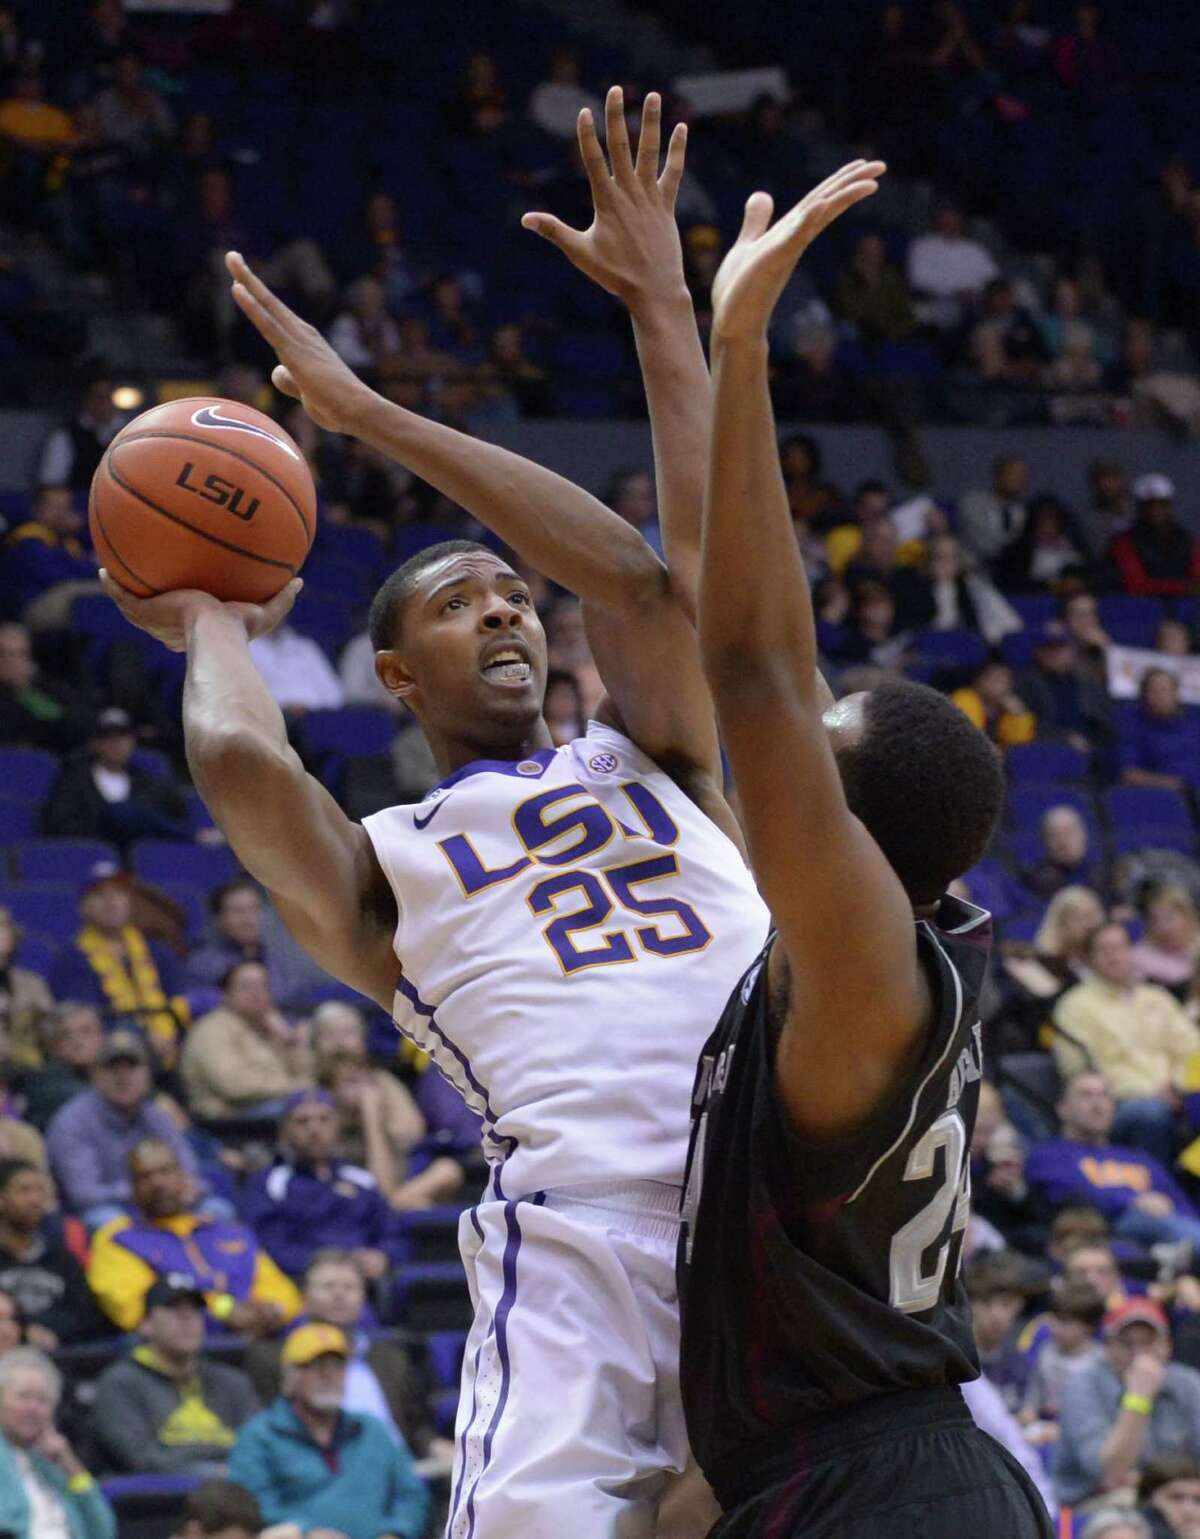 LSU's Jordan Mickey is blocked by a Texas A&M player during an NCAA college basketball game Wednesday, Feb. 26, 2014, in Baton Rouge, La.(AP Photo/The Baton Rouge Advocate, Heather McClelland)